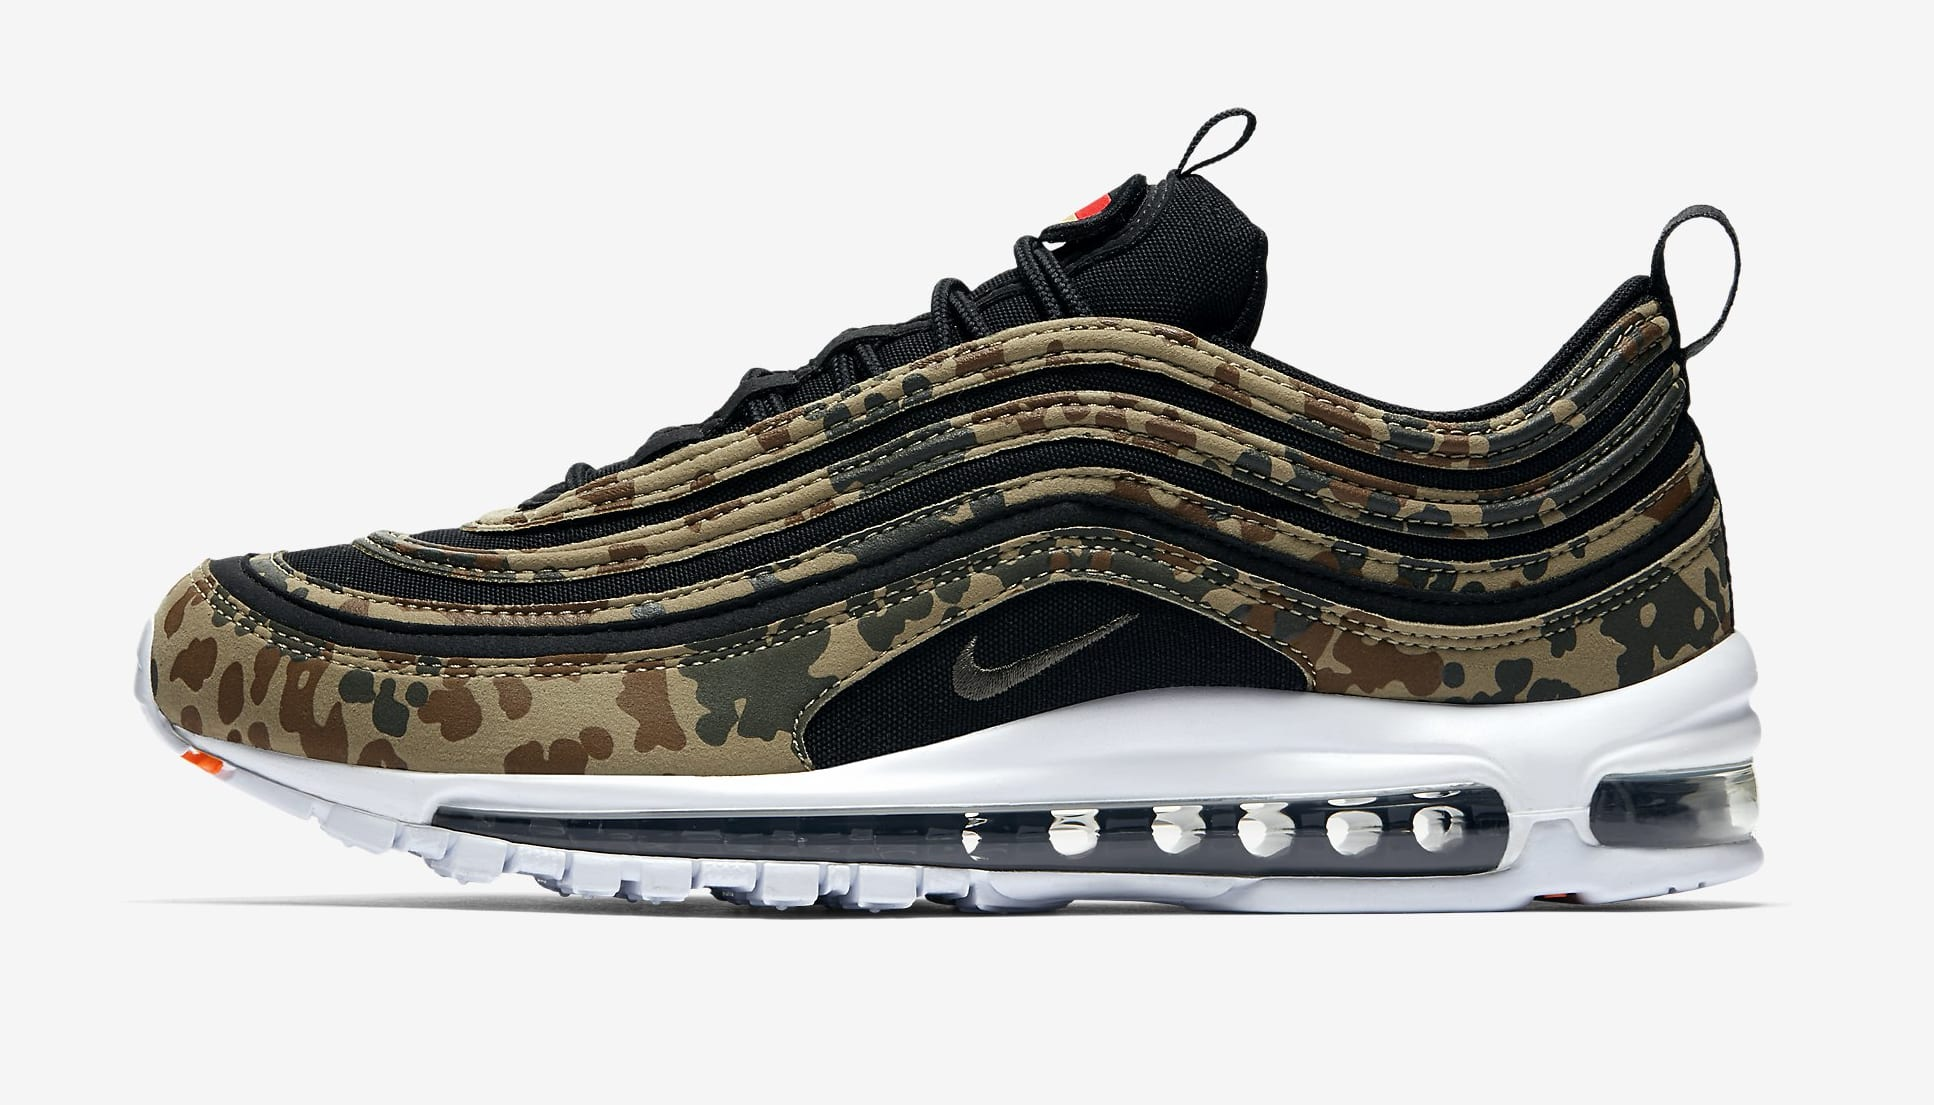 Nike Air Max 97 'Country Camo' Germany AJ2614-204 (Lateral)